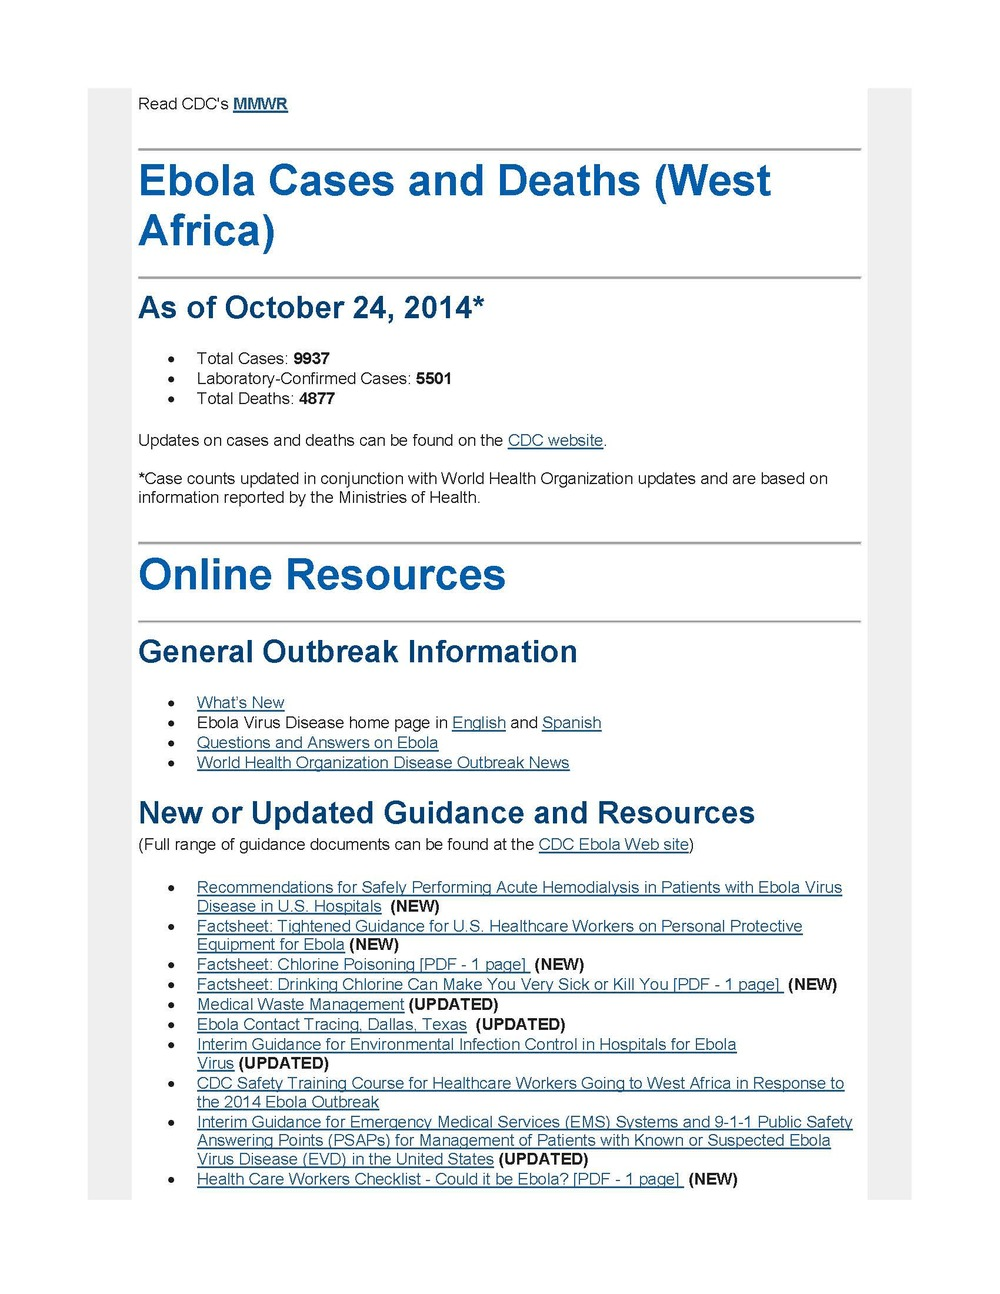 CDC Emergency Partners Update 2014 Ebola Response_Page_03.jpg